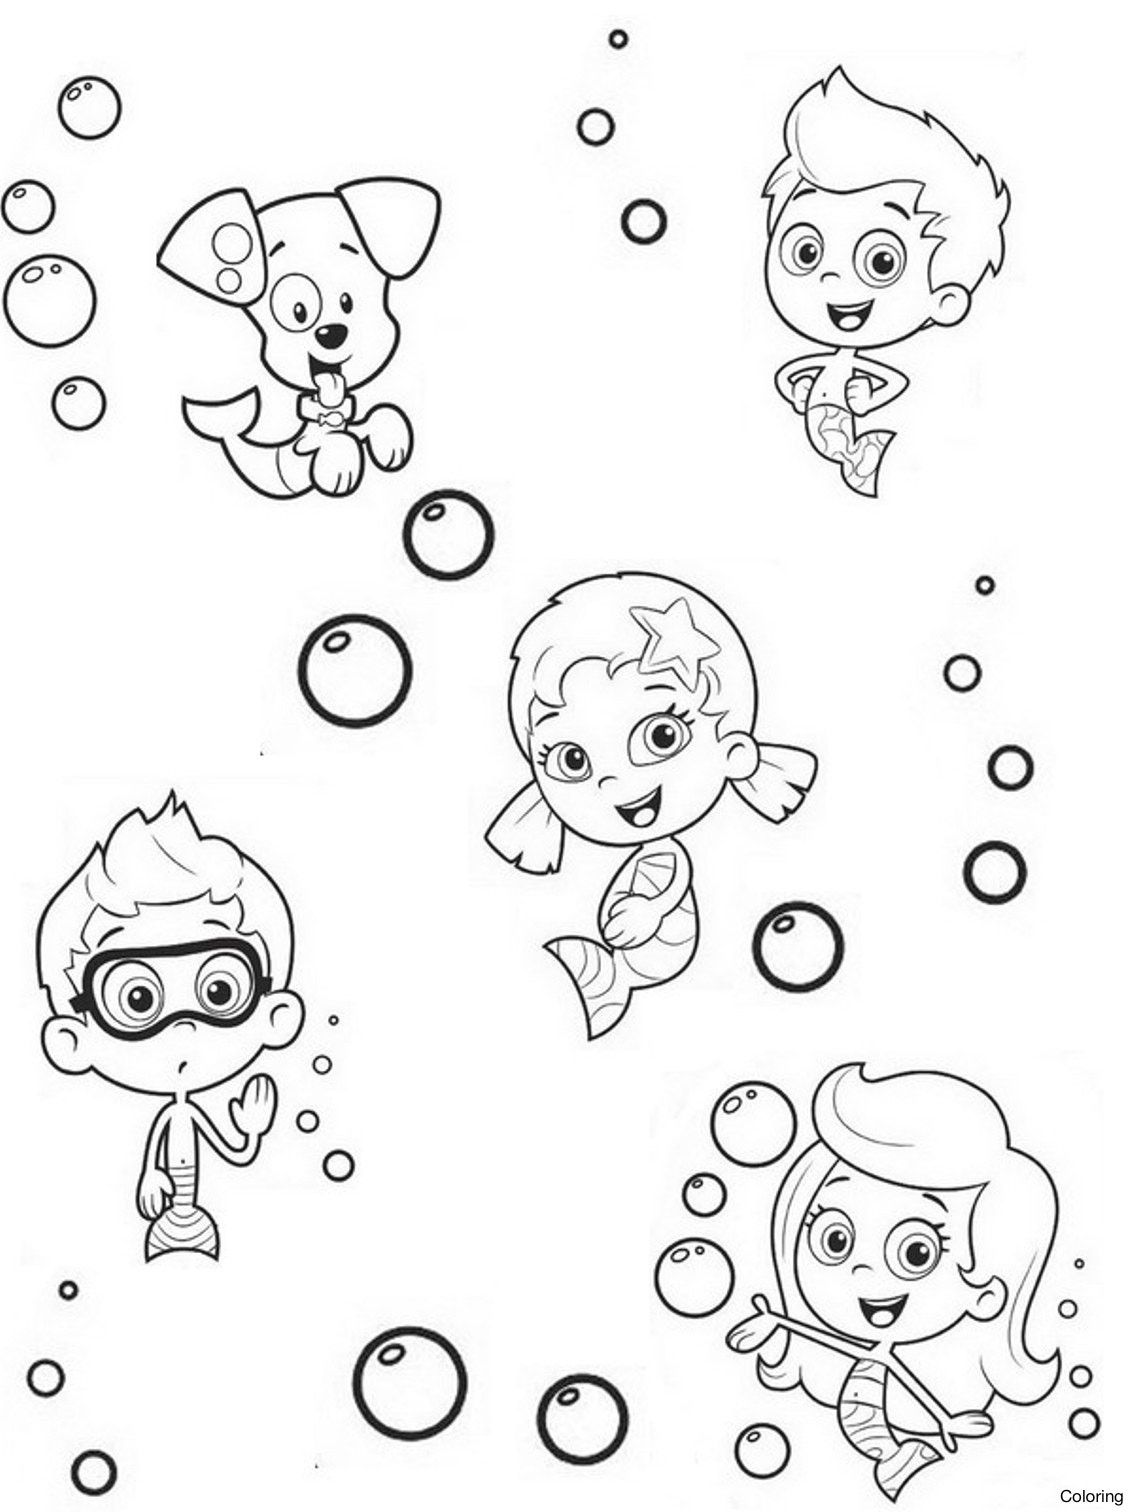 Image Result For Free Bubble Guppies Birthday Printables Bubble Guppies Coloring Pages Nick Jr Coloring Pages Bubble Guppies Characters